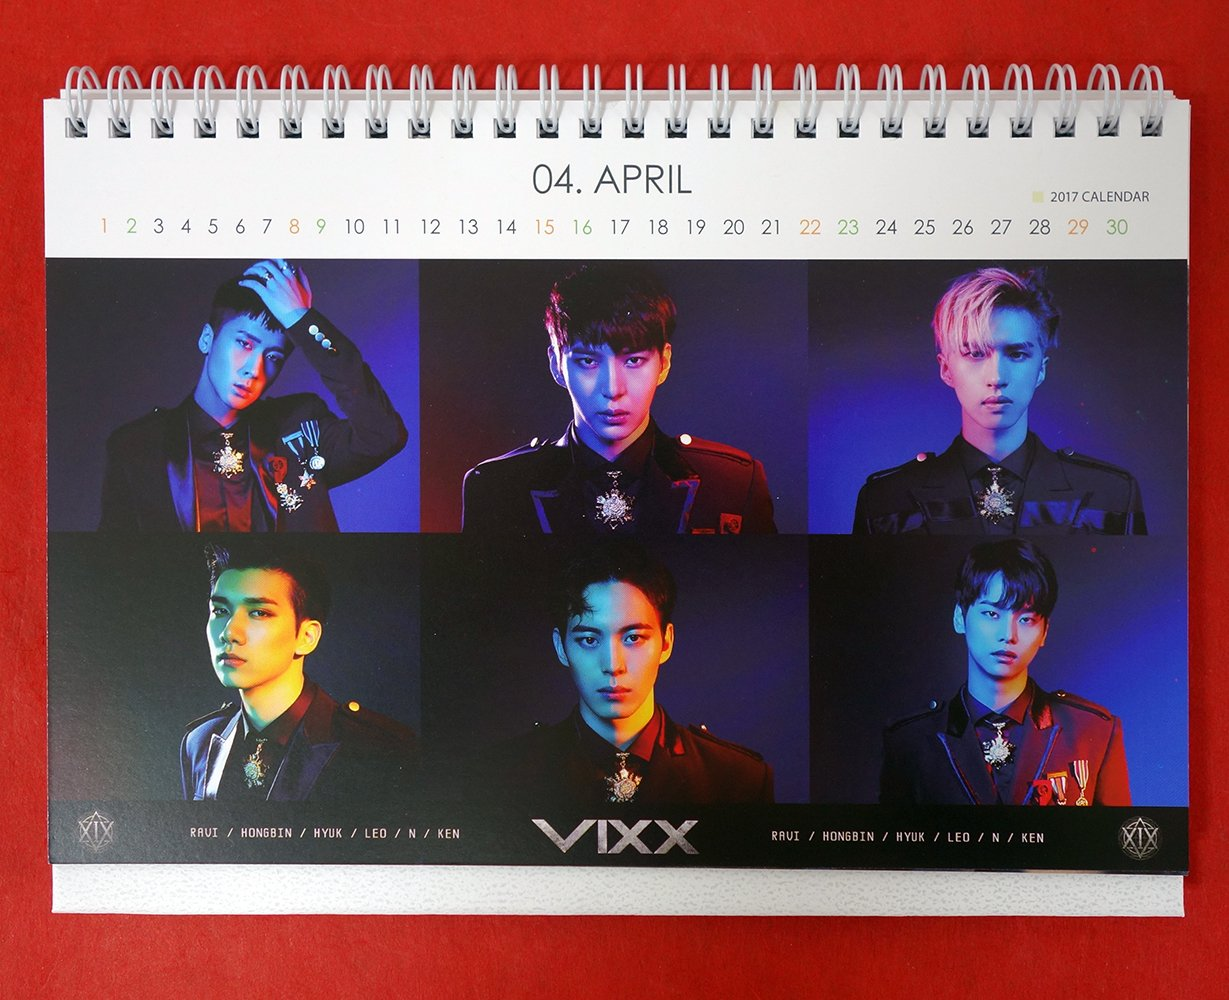 VIXX - 2017-2018 PHOTO DESK CALENDAR: VIXX: Amazon com: Books